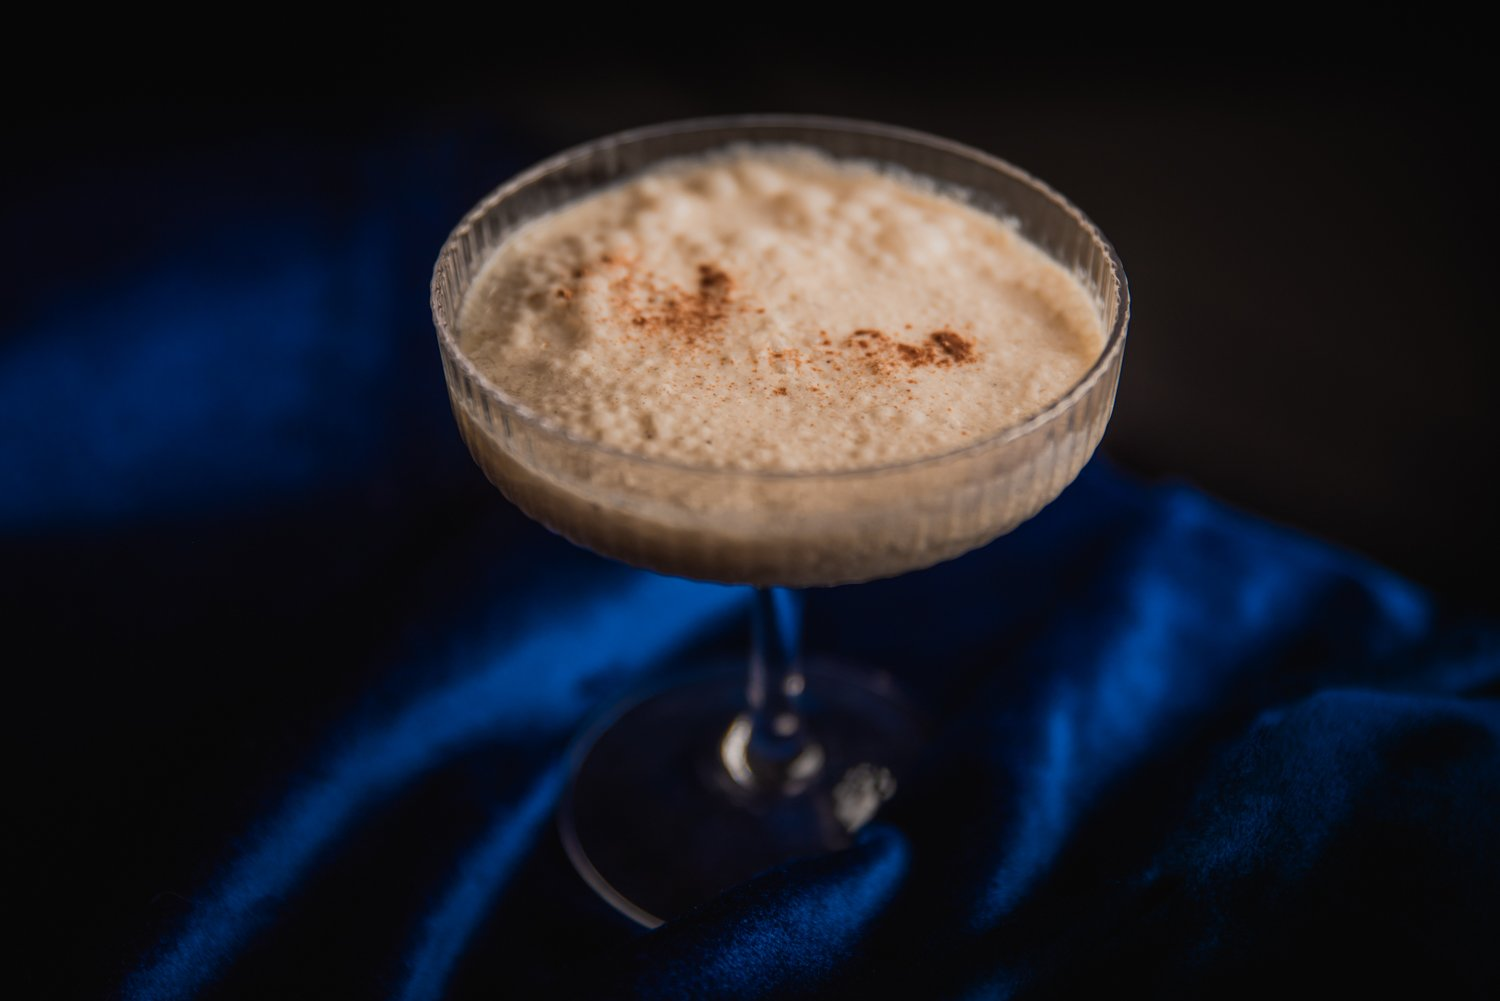 We were stunned. Derek Brown, the expert mixologist who was known for famously mixing cocktails for Obama in the White House, has now published his alcohol-free cocktail to celebrate Joe Biden's inauguration. And he's included Noughty in the recipe!